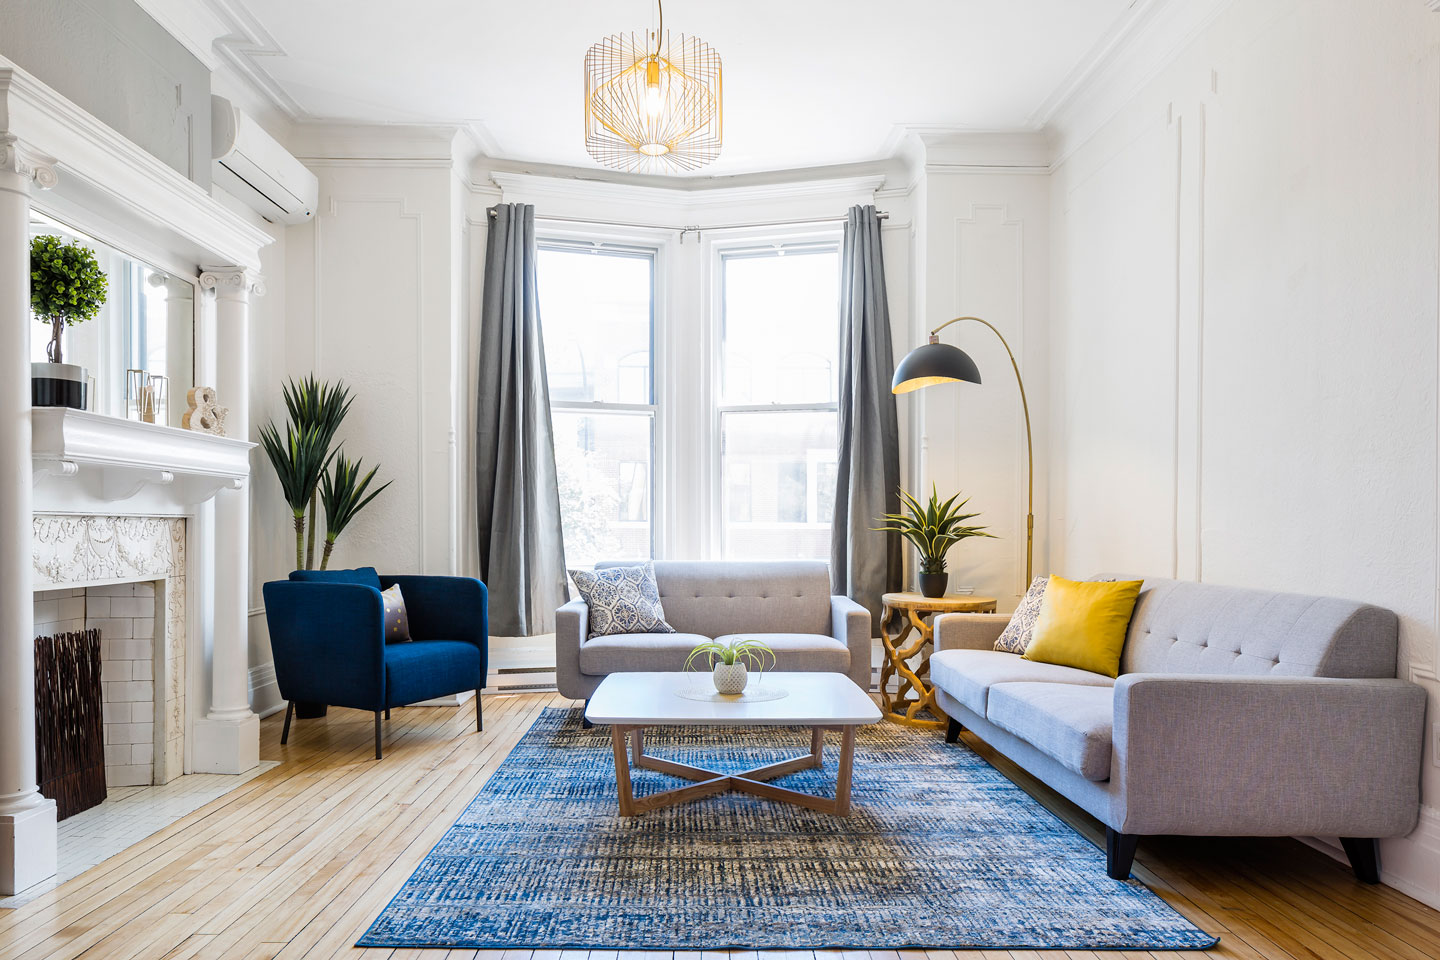 Chic Laurier #2: luminous living room with architectural details